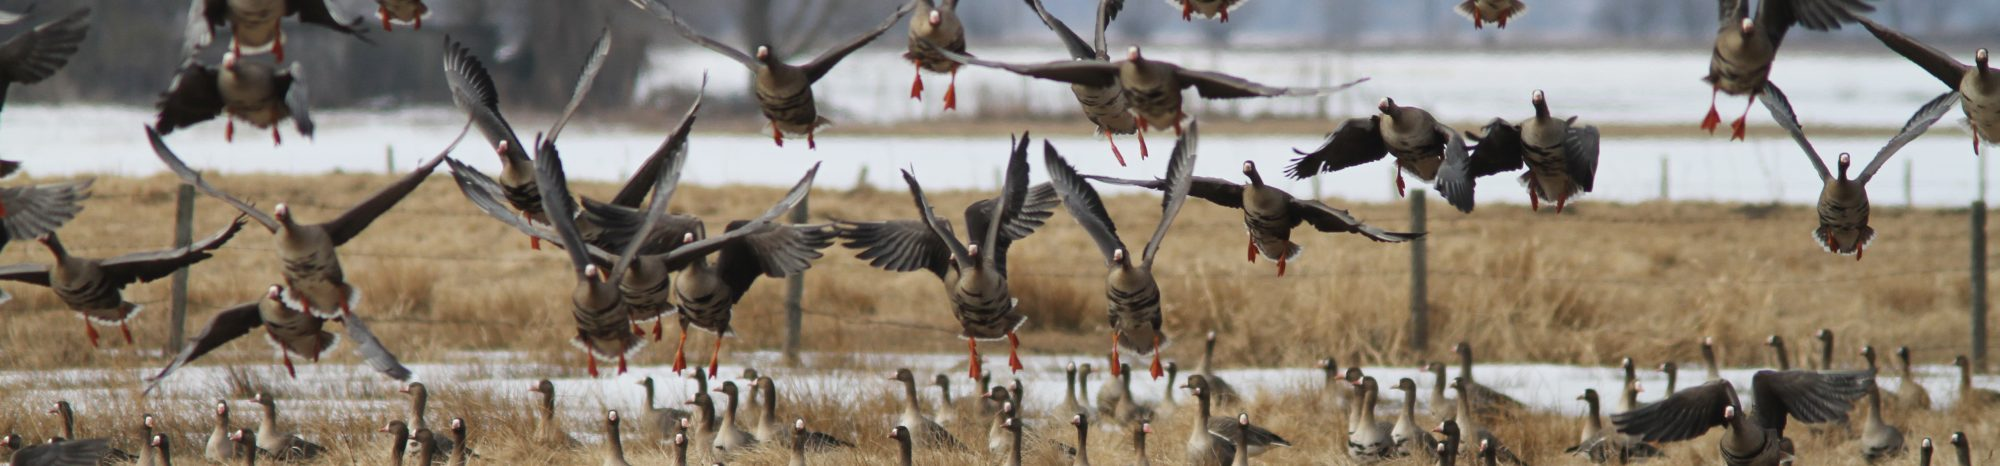 Geese conference